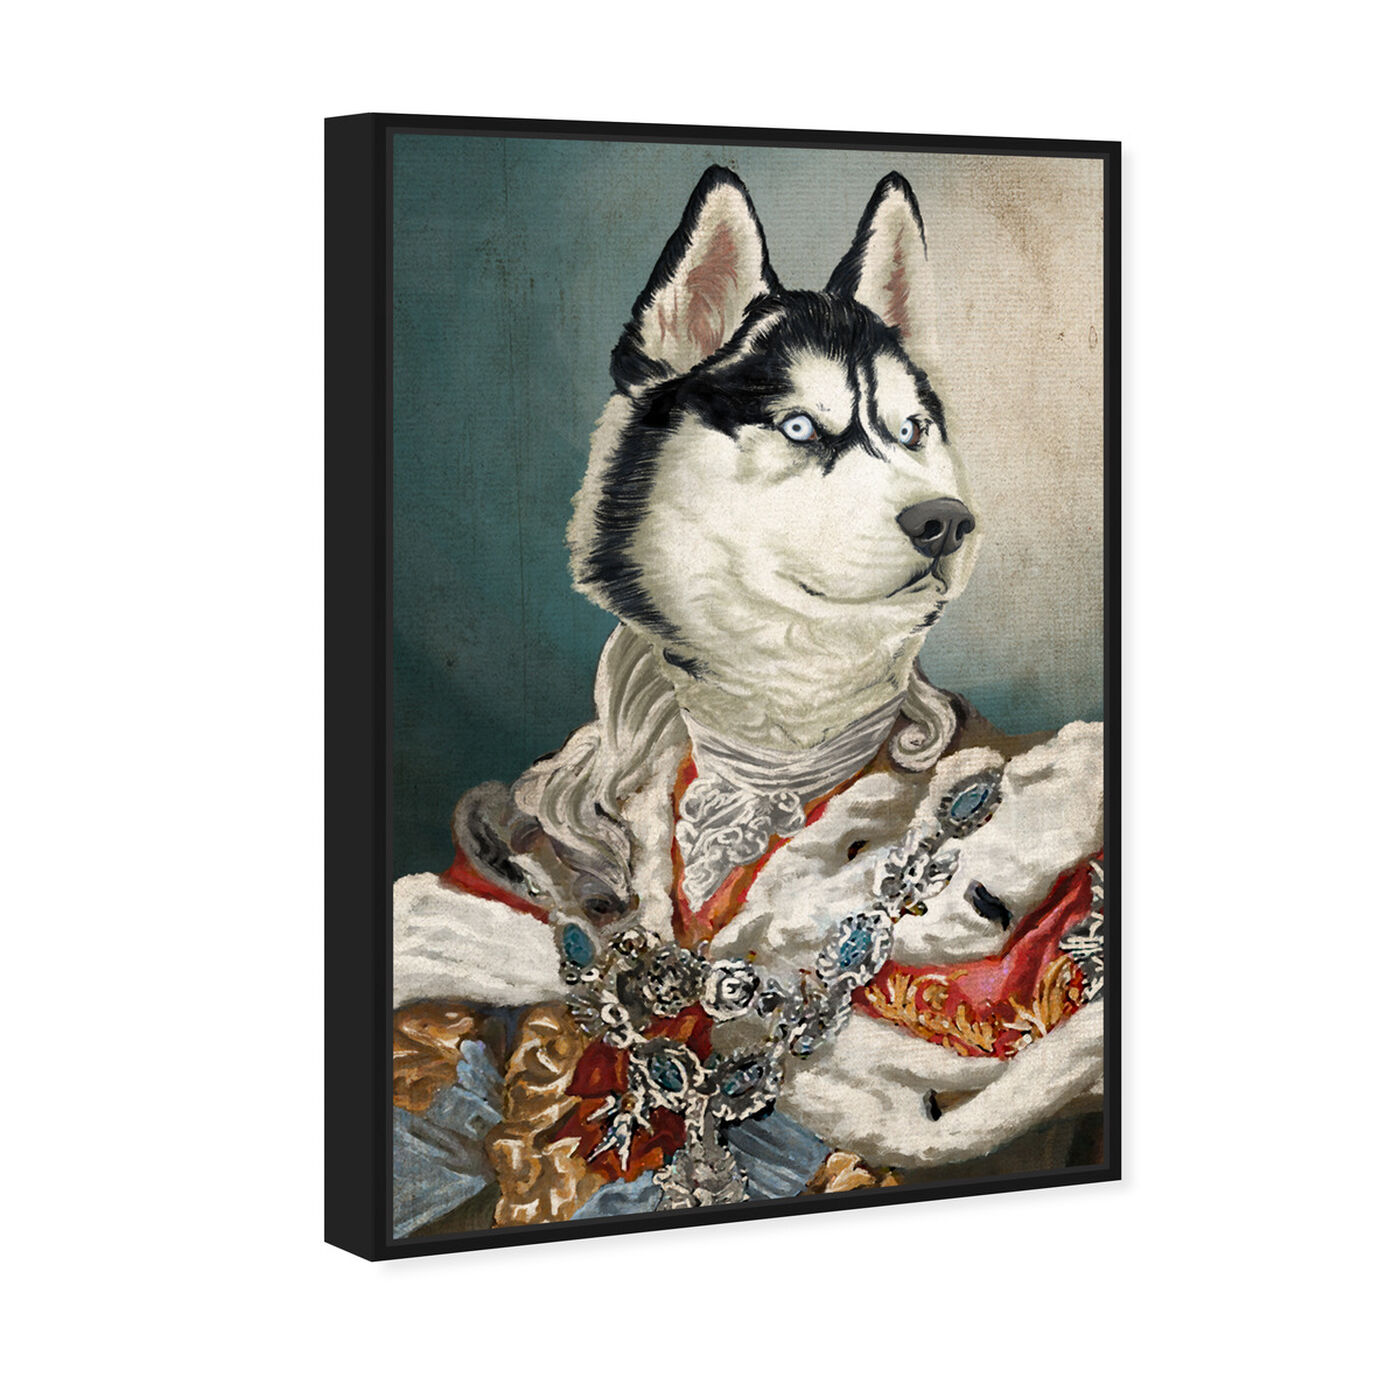 Angled view of Royal Husky featuring animals and dogs and puppies art.